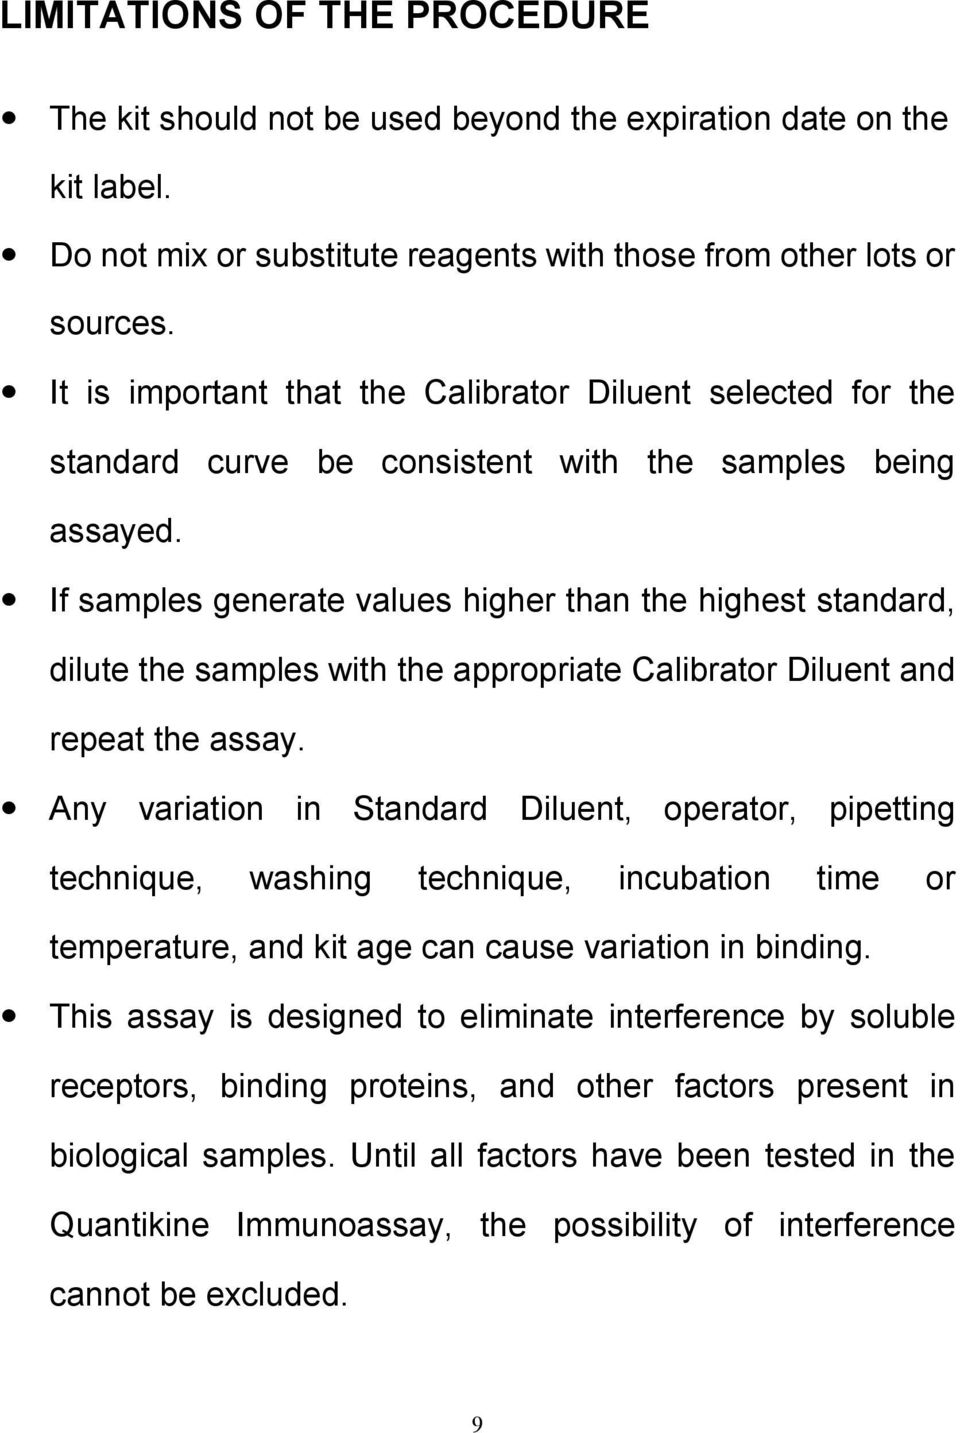 If samples generate values higher than the highest standard, dilute the samples with the appropriate Calibrator Diluent and repeat the assay.